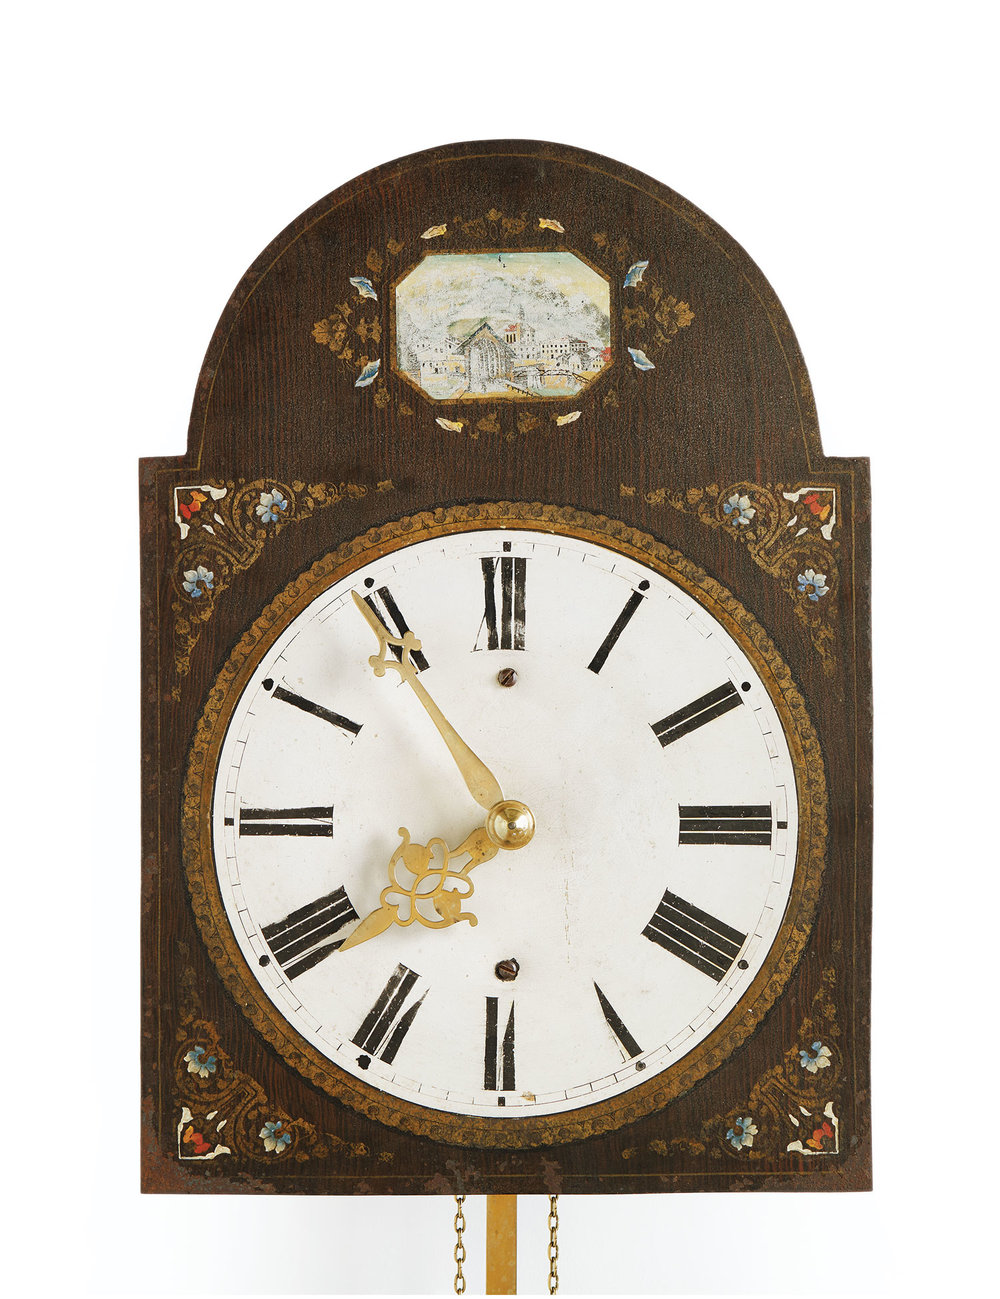 mandtler-clock-mennonite-1865-mc0217.jpg